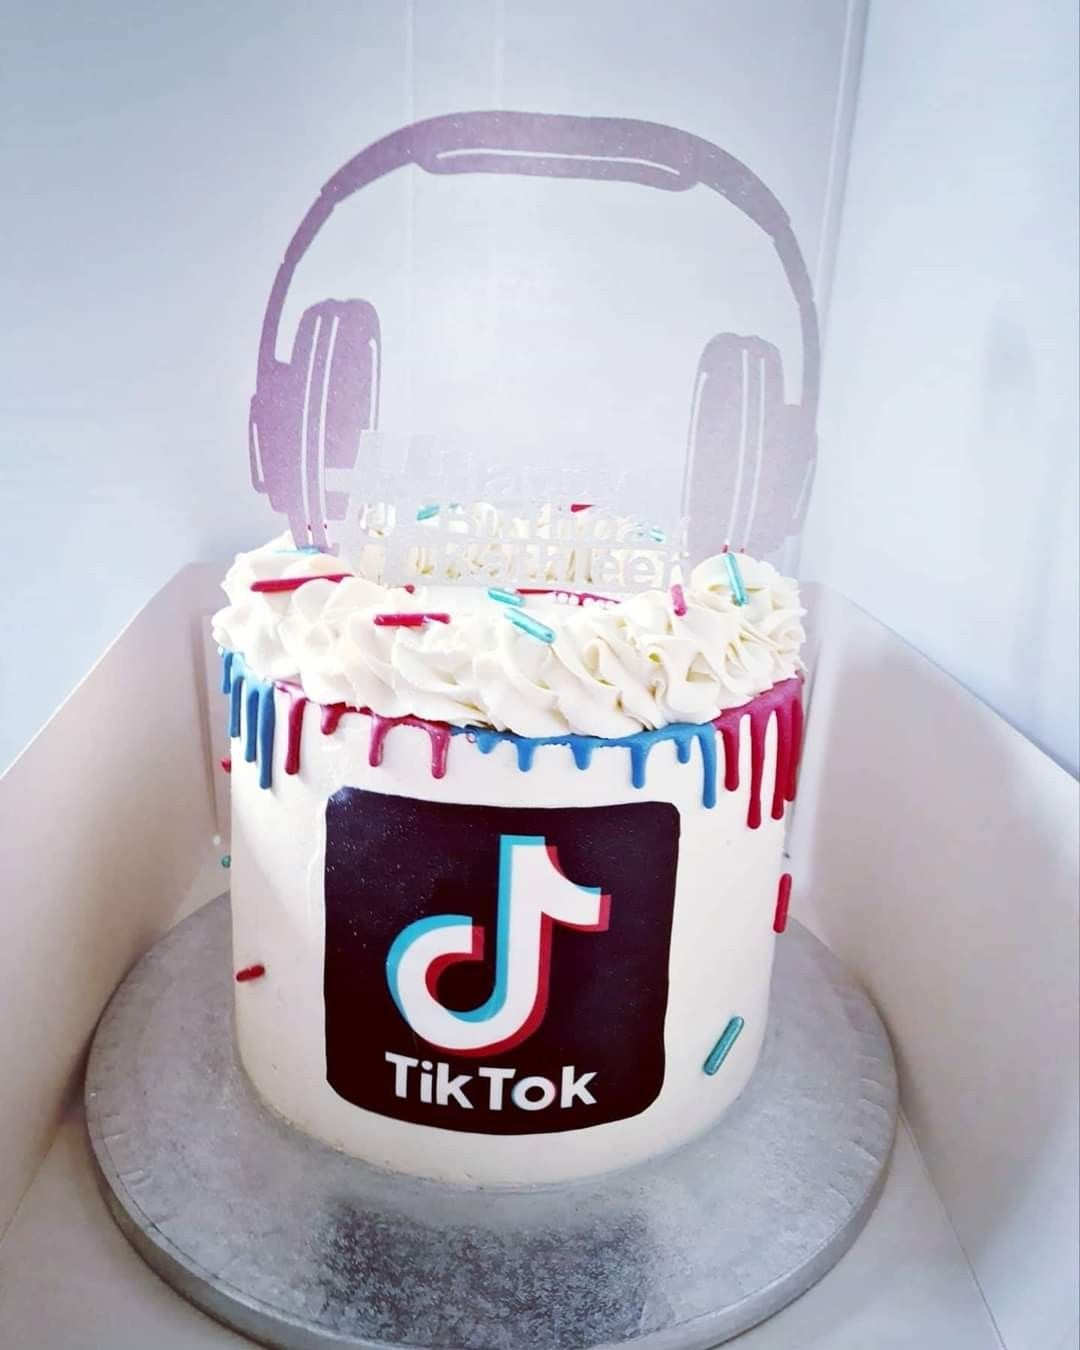 Tiktok Birthday Cake Beautiful Cake Designs Simple Birthday Cake Unique Birthday Cakes